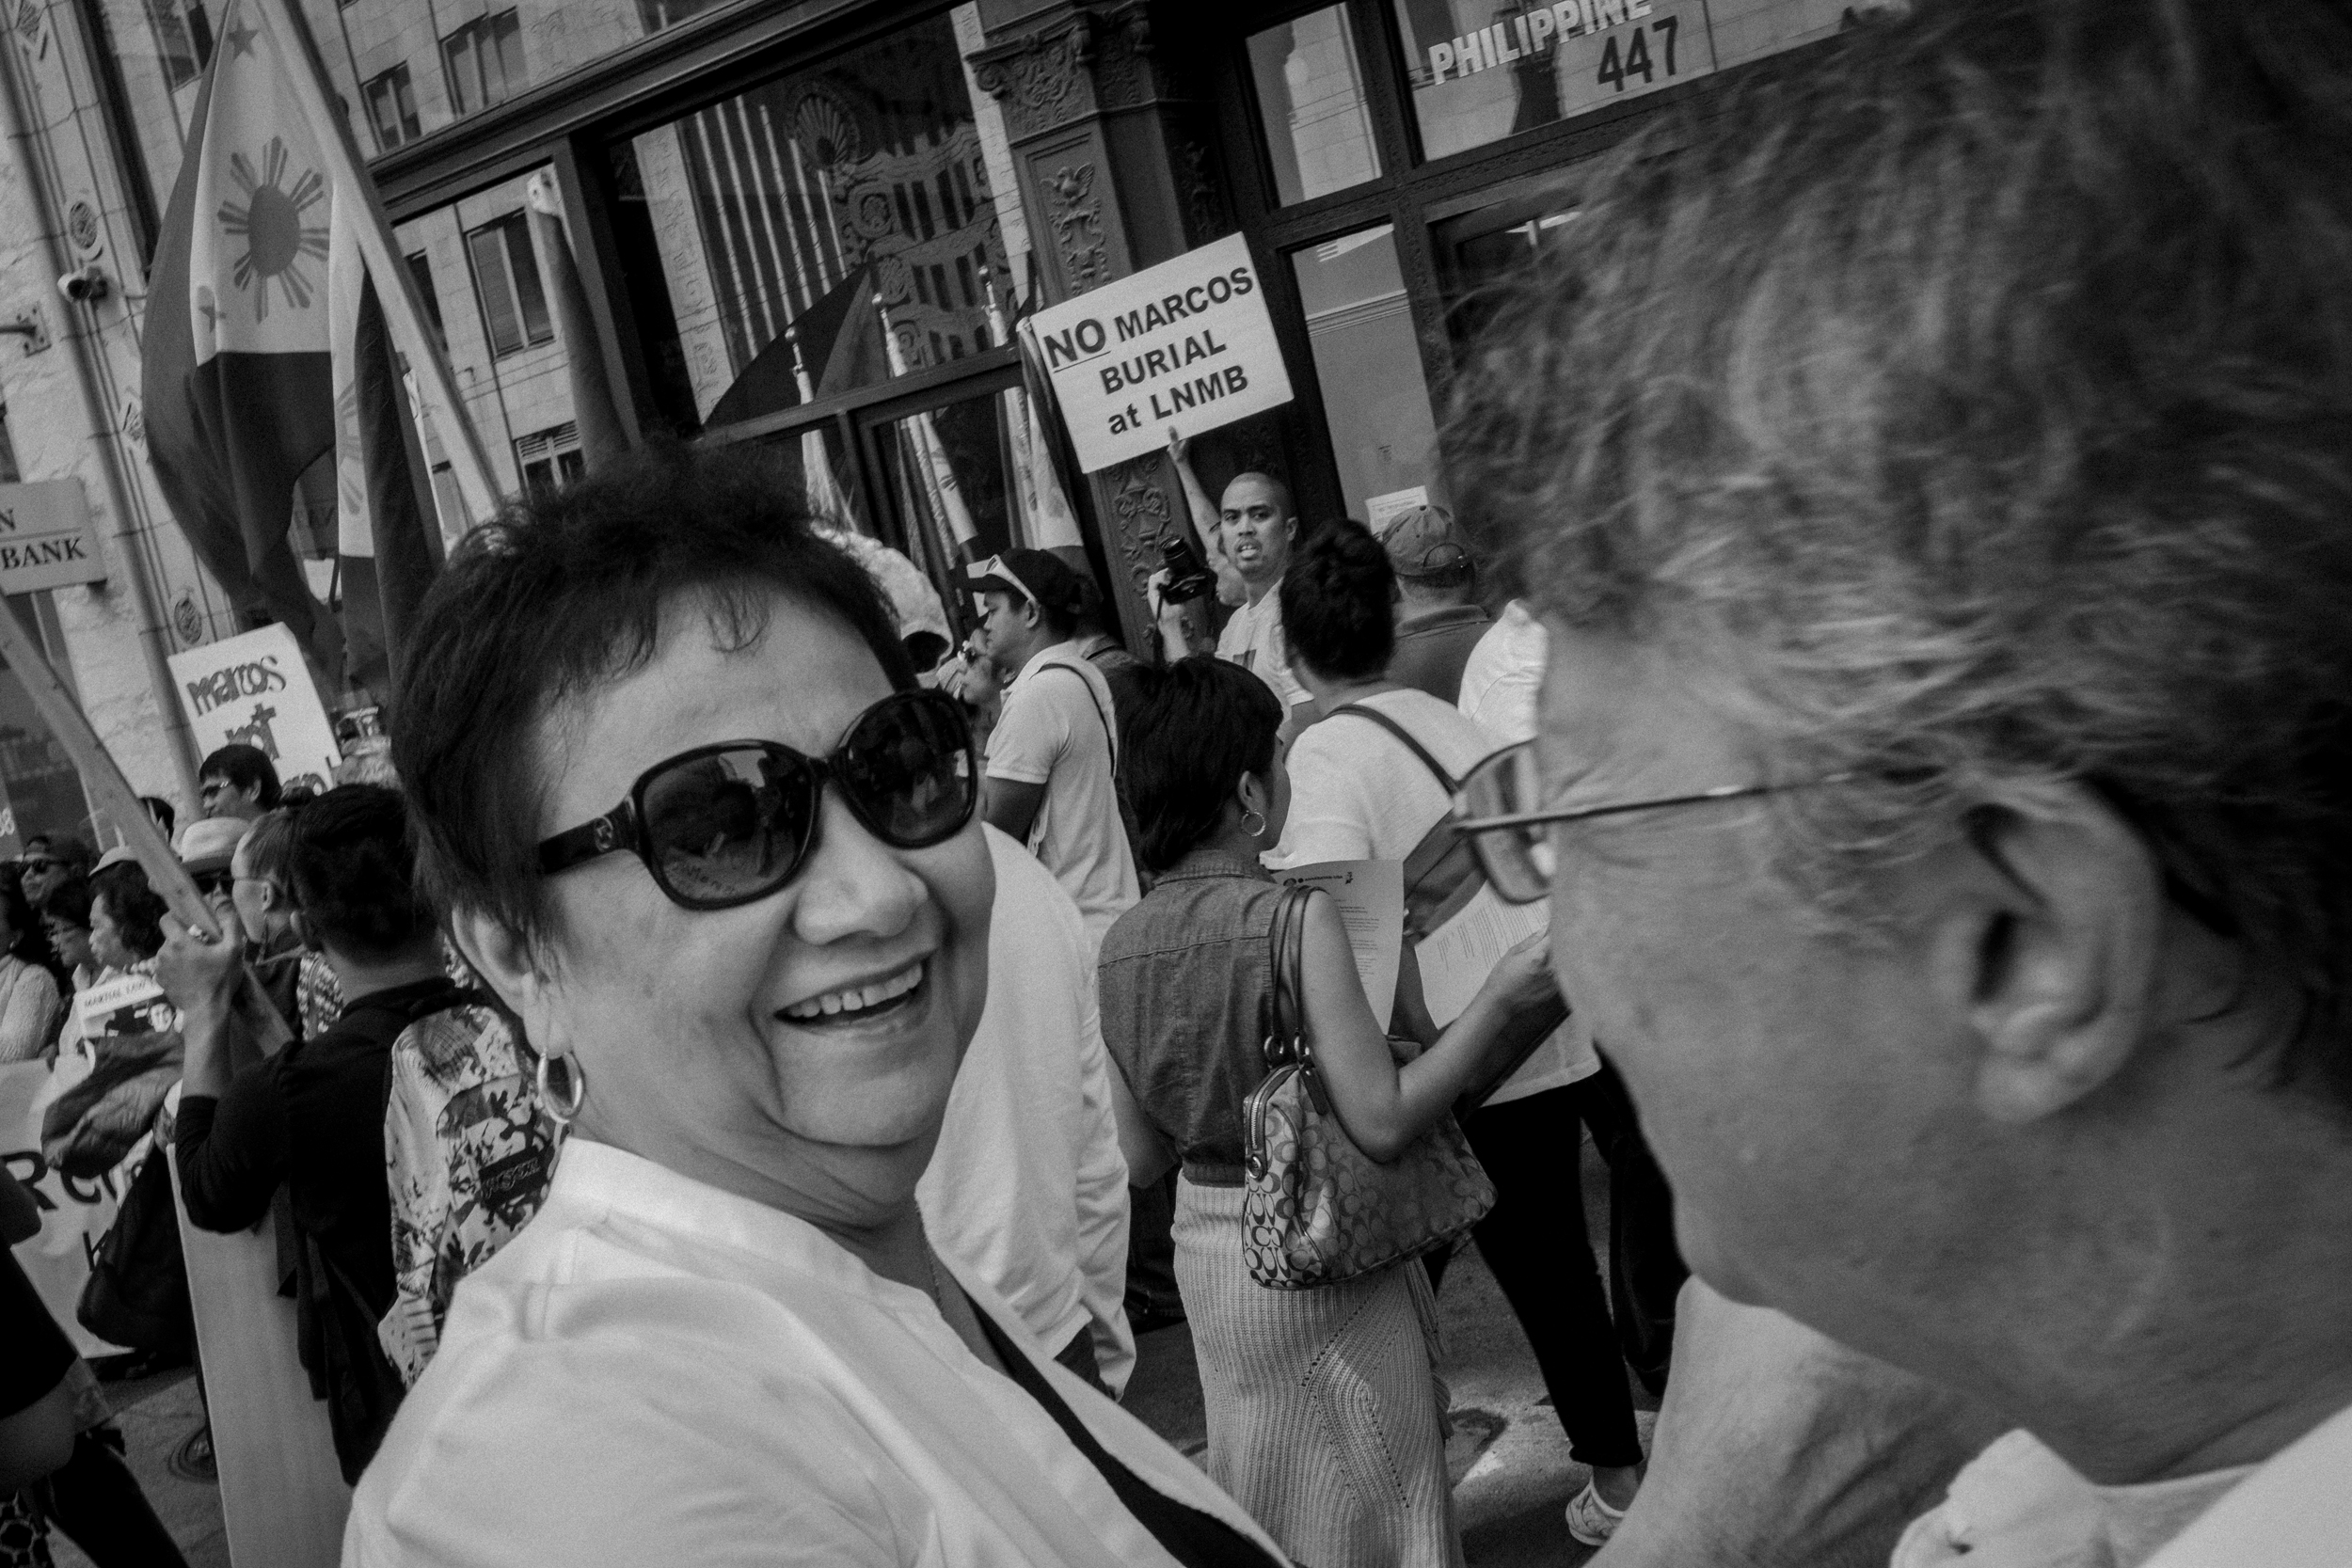 OLD TIMES. Sorcy Apostol of Sacramento excited to see fellow former activist Melinda Paras. Photo by Rick Rocamora